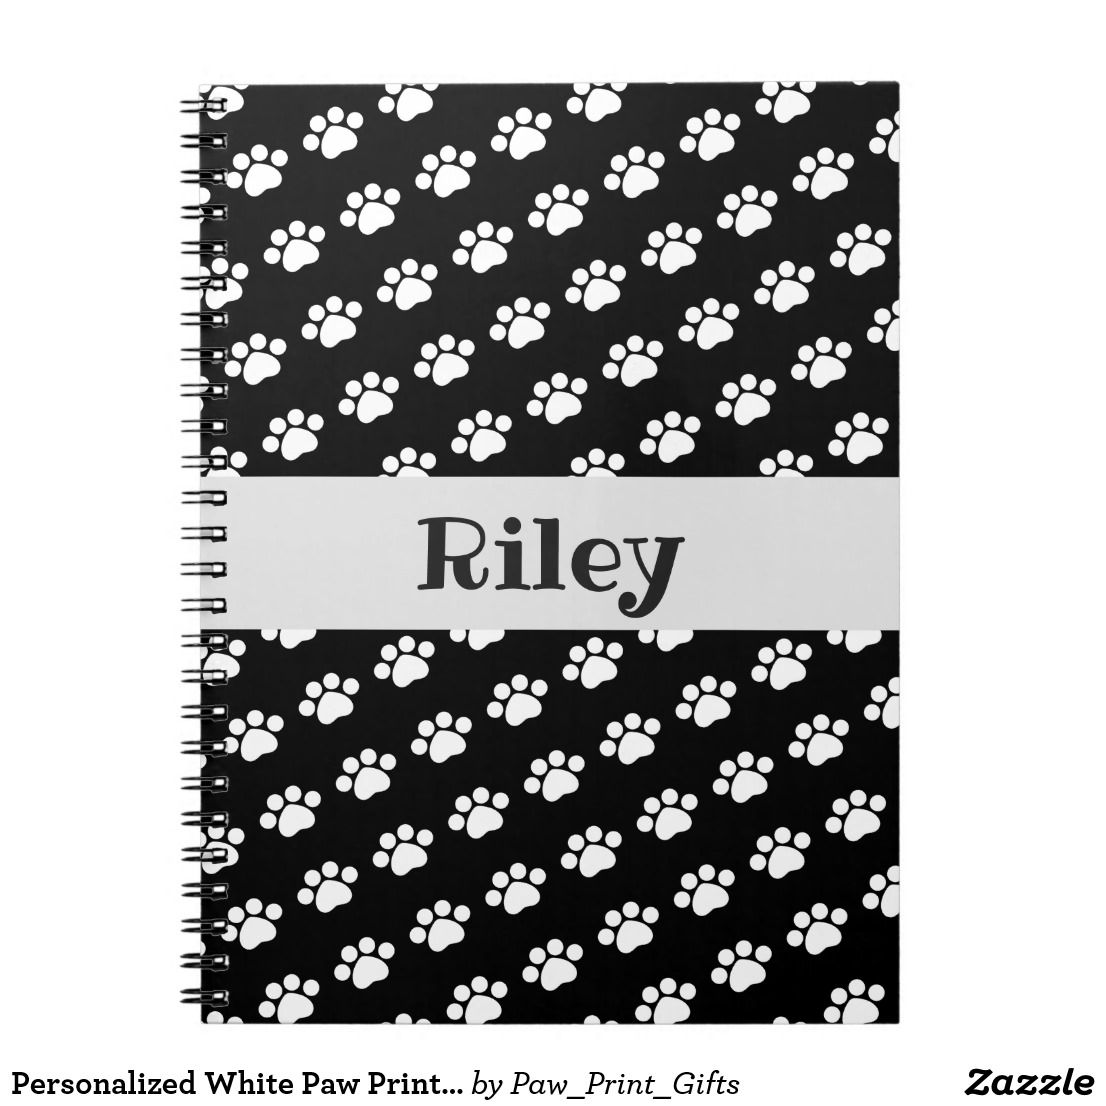 Personalized White Paw Print Pattern Notebook